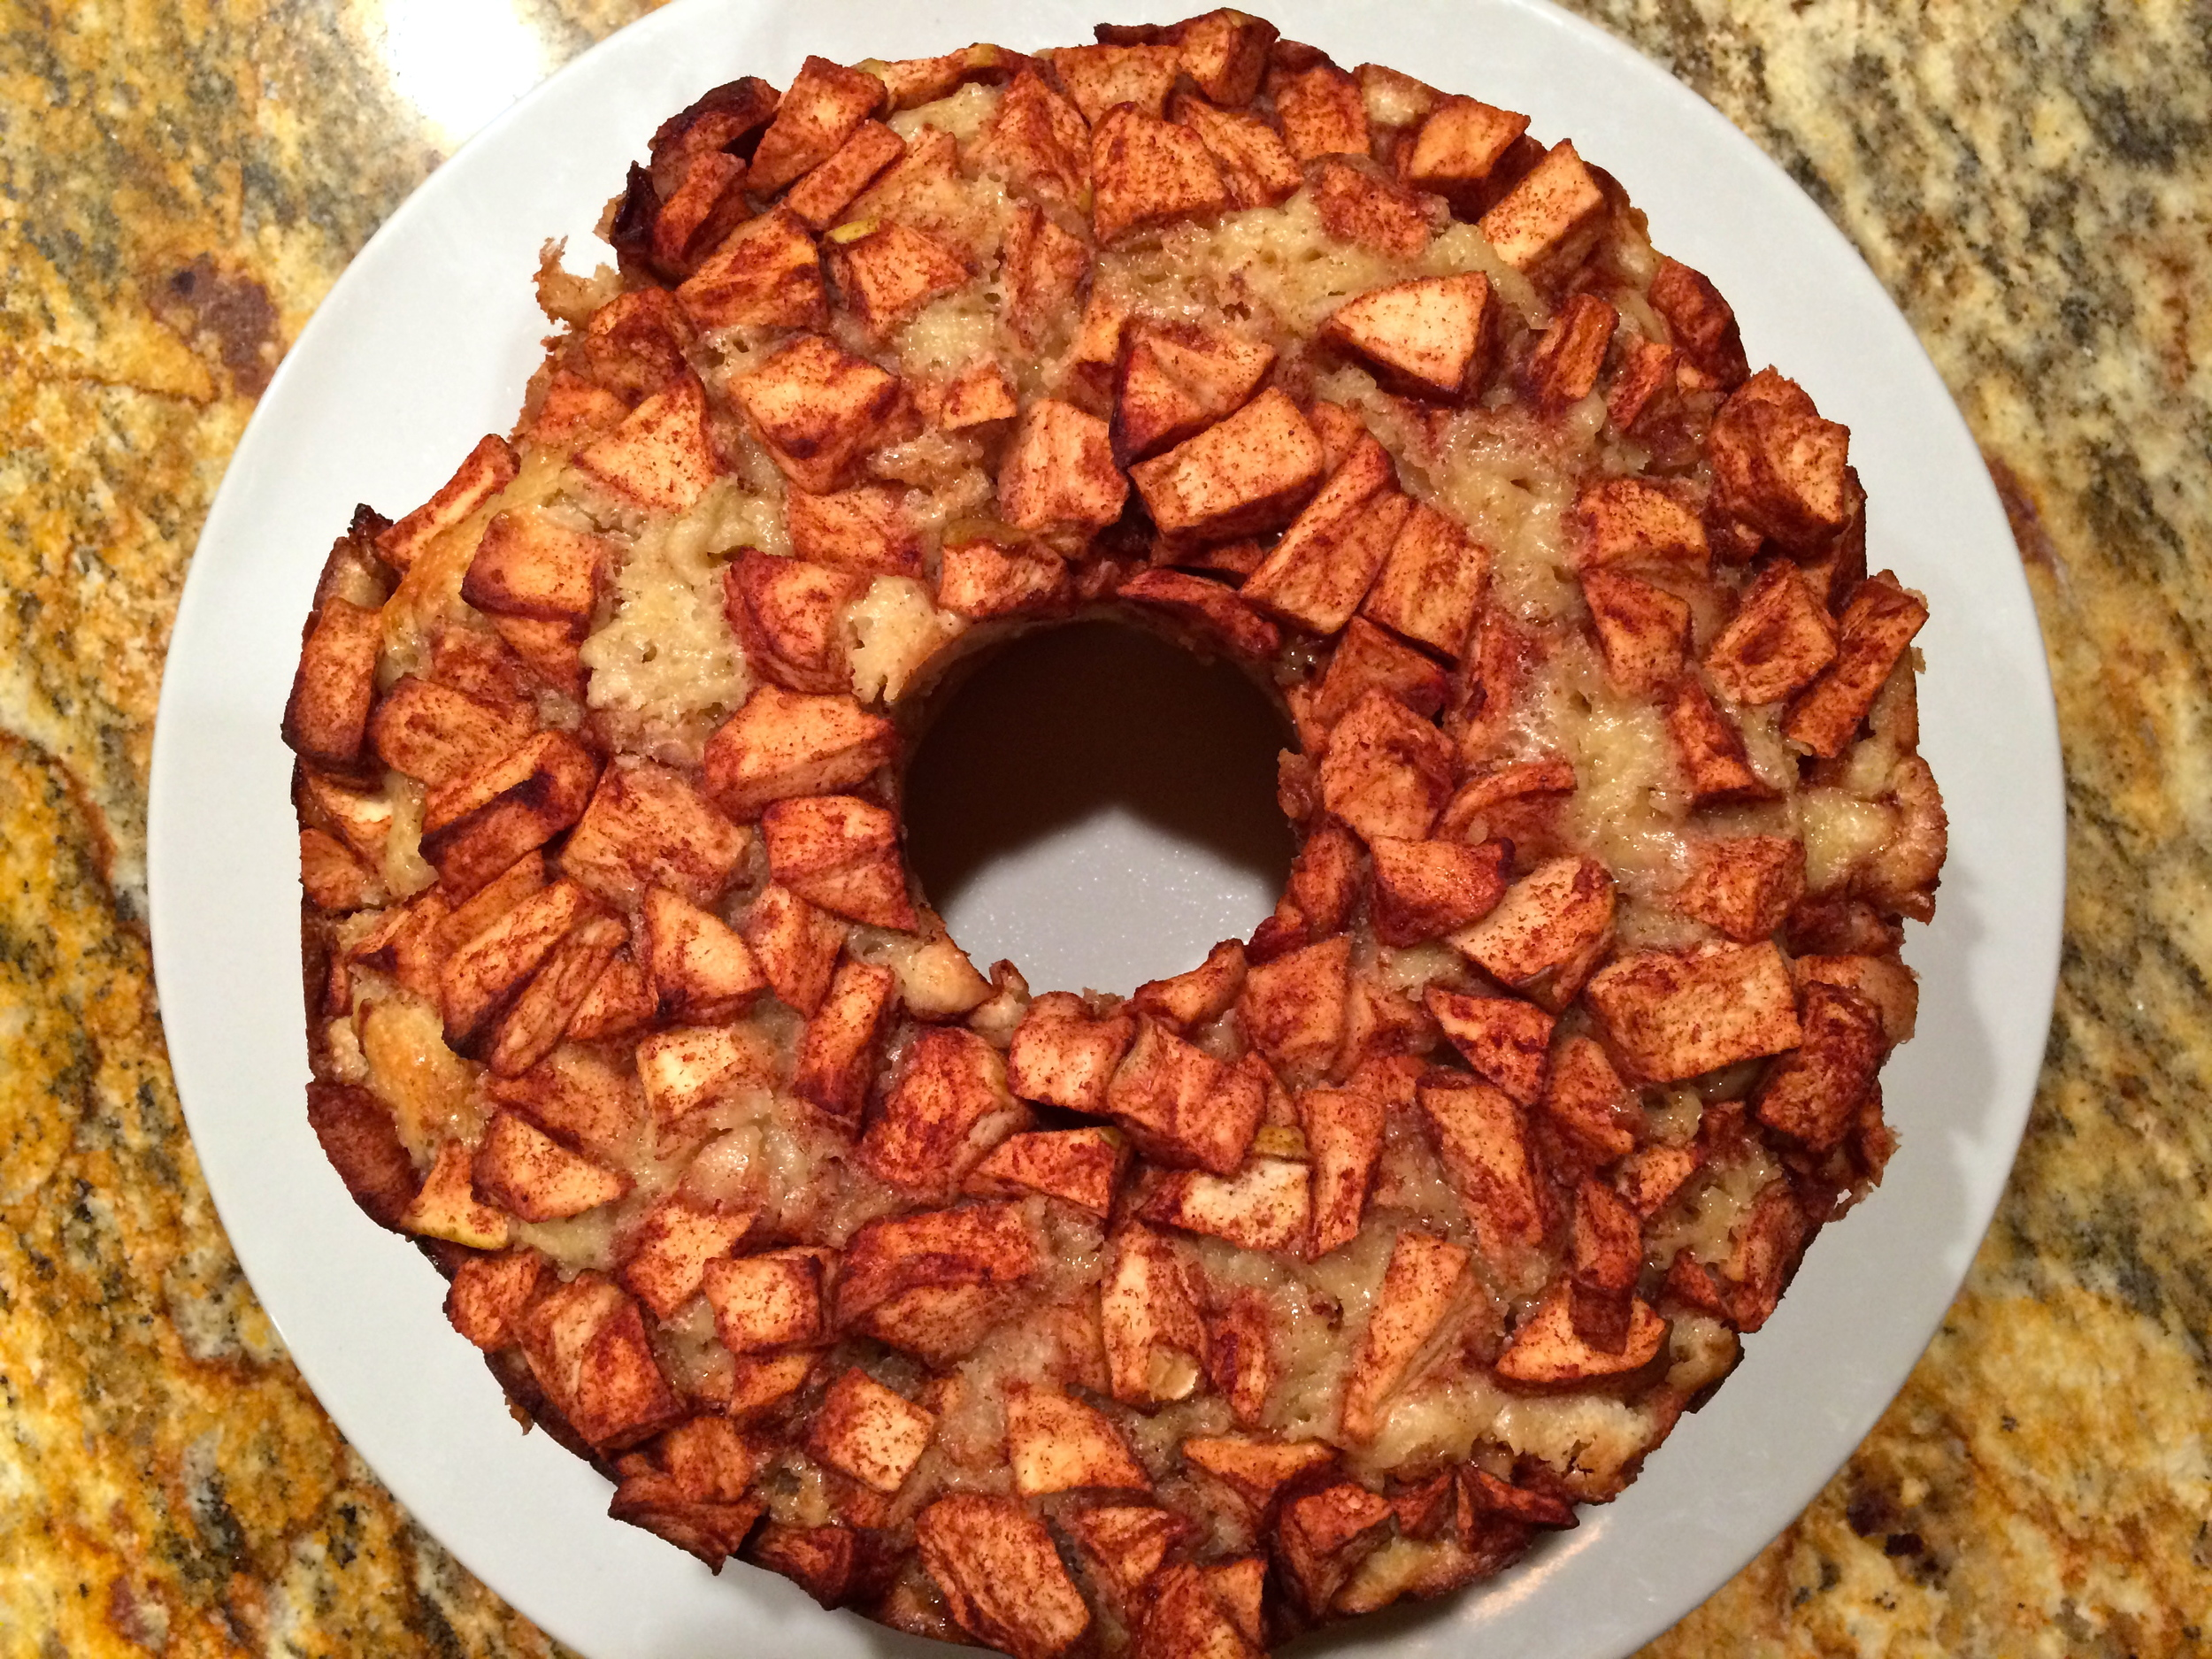 The famous apple cake, the first one of the year! Head over to www.smittenkitchen.com and look for Mom's Apple Cake. My only variation was to add the zest of 1 lemon and 1-2 TBS fresh grated ginger to the batter.